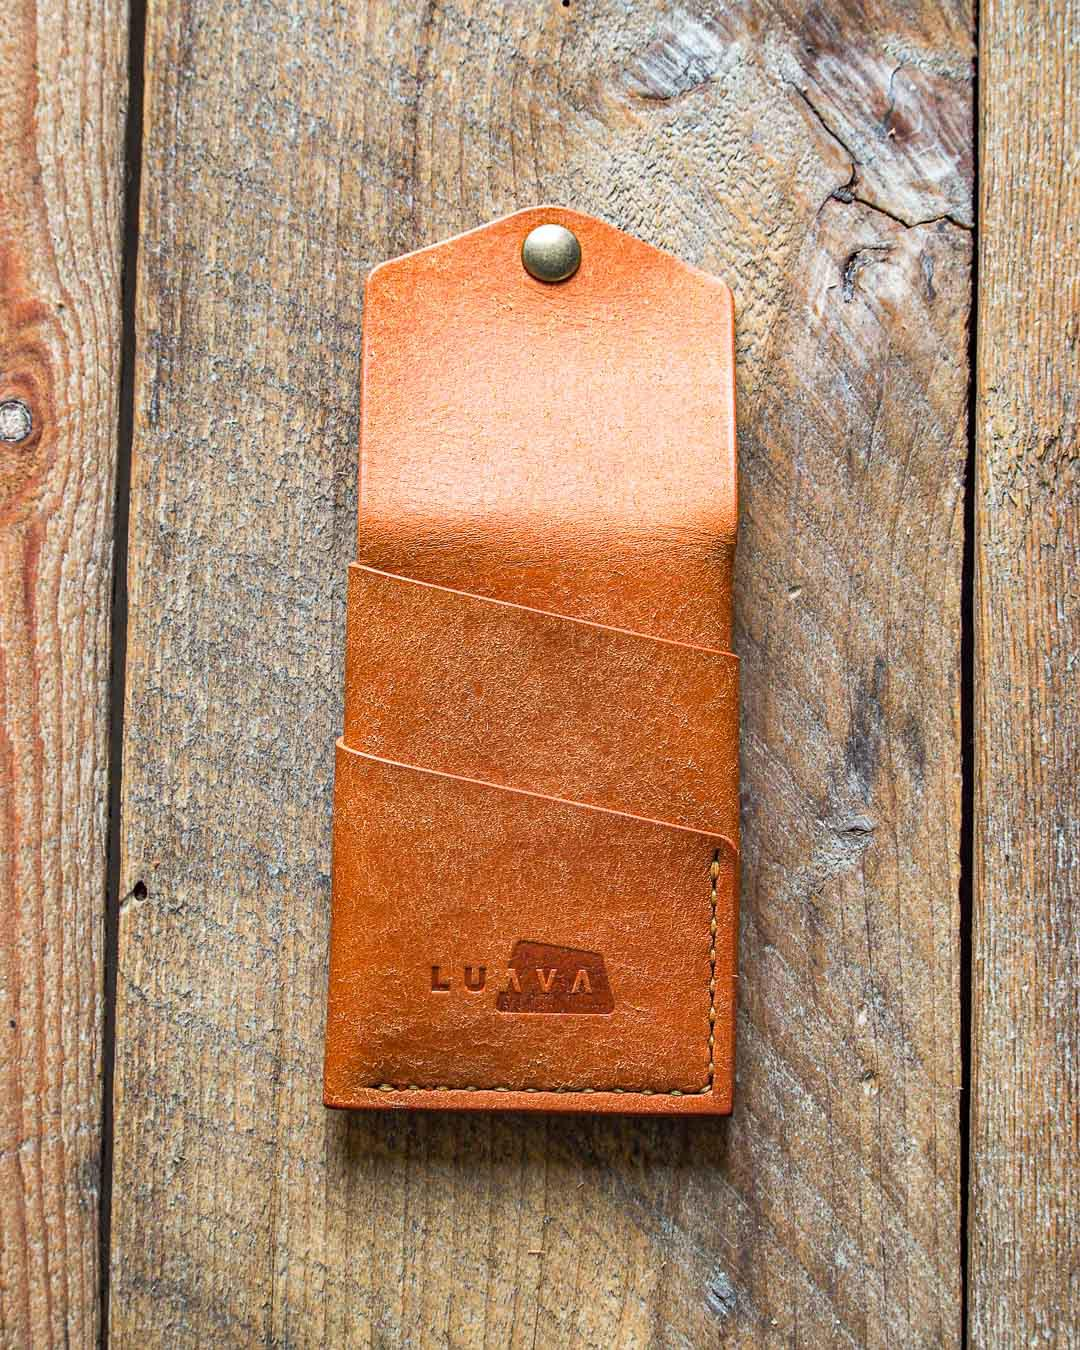 Luava handmade leather wallet handcrafted card holder cardholder made in finland overfold badalassi carlo pueblo cognac back open